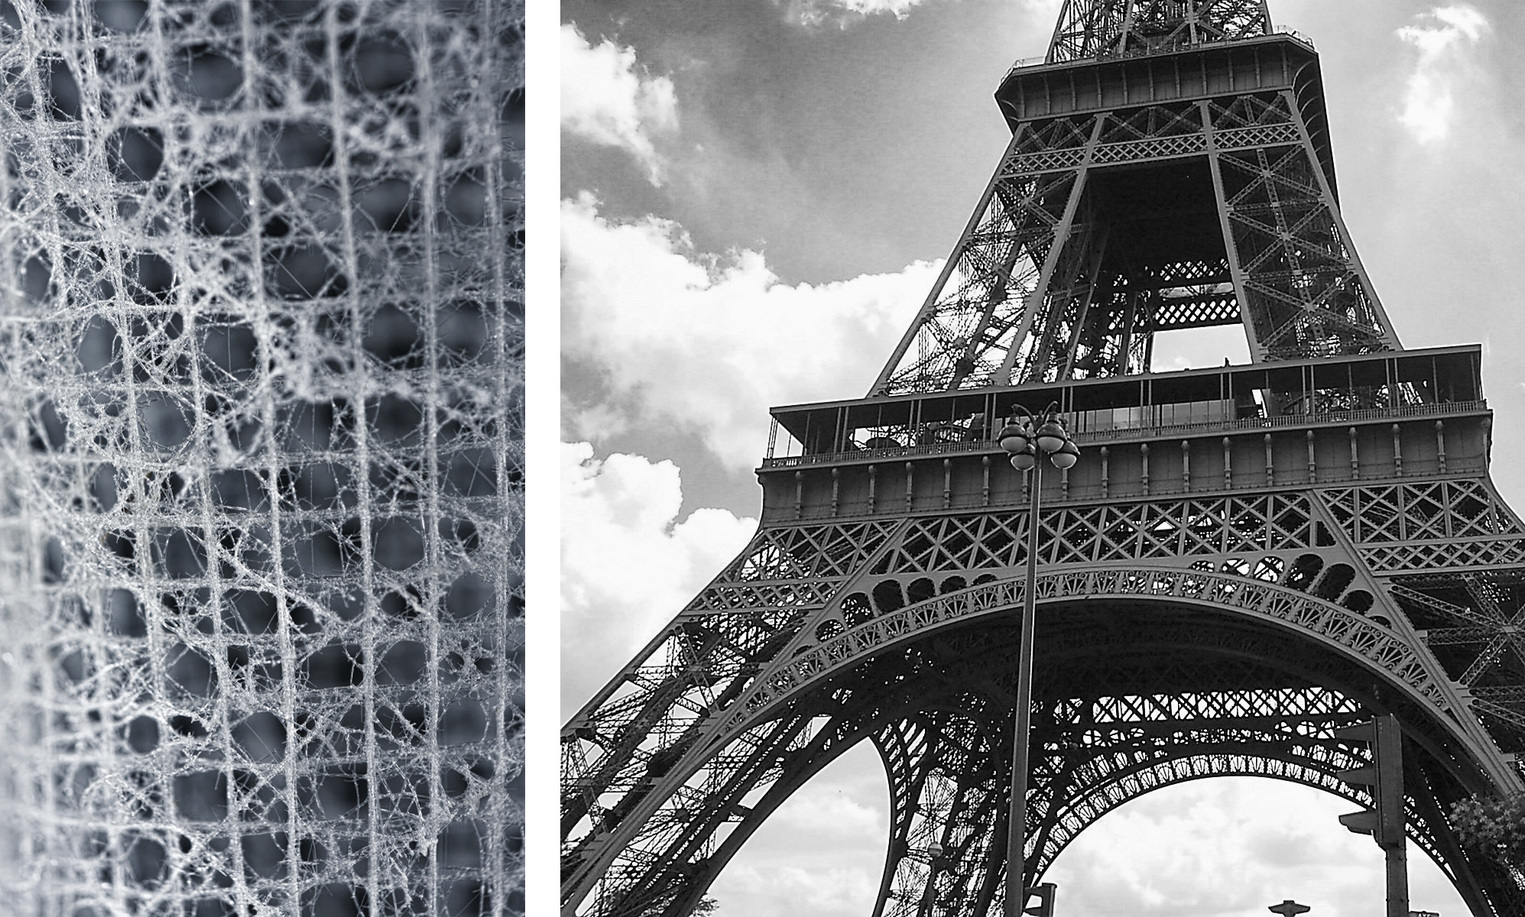 The intricate skeleton of  Euplectella aspergillum  (left), and the Eiffel Tower (right). Both structures are composed of an assembly of beam-like elements. - Image Credit: Michael A. Monn,  CC BY-ND